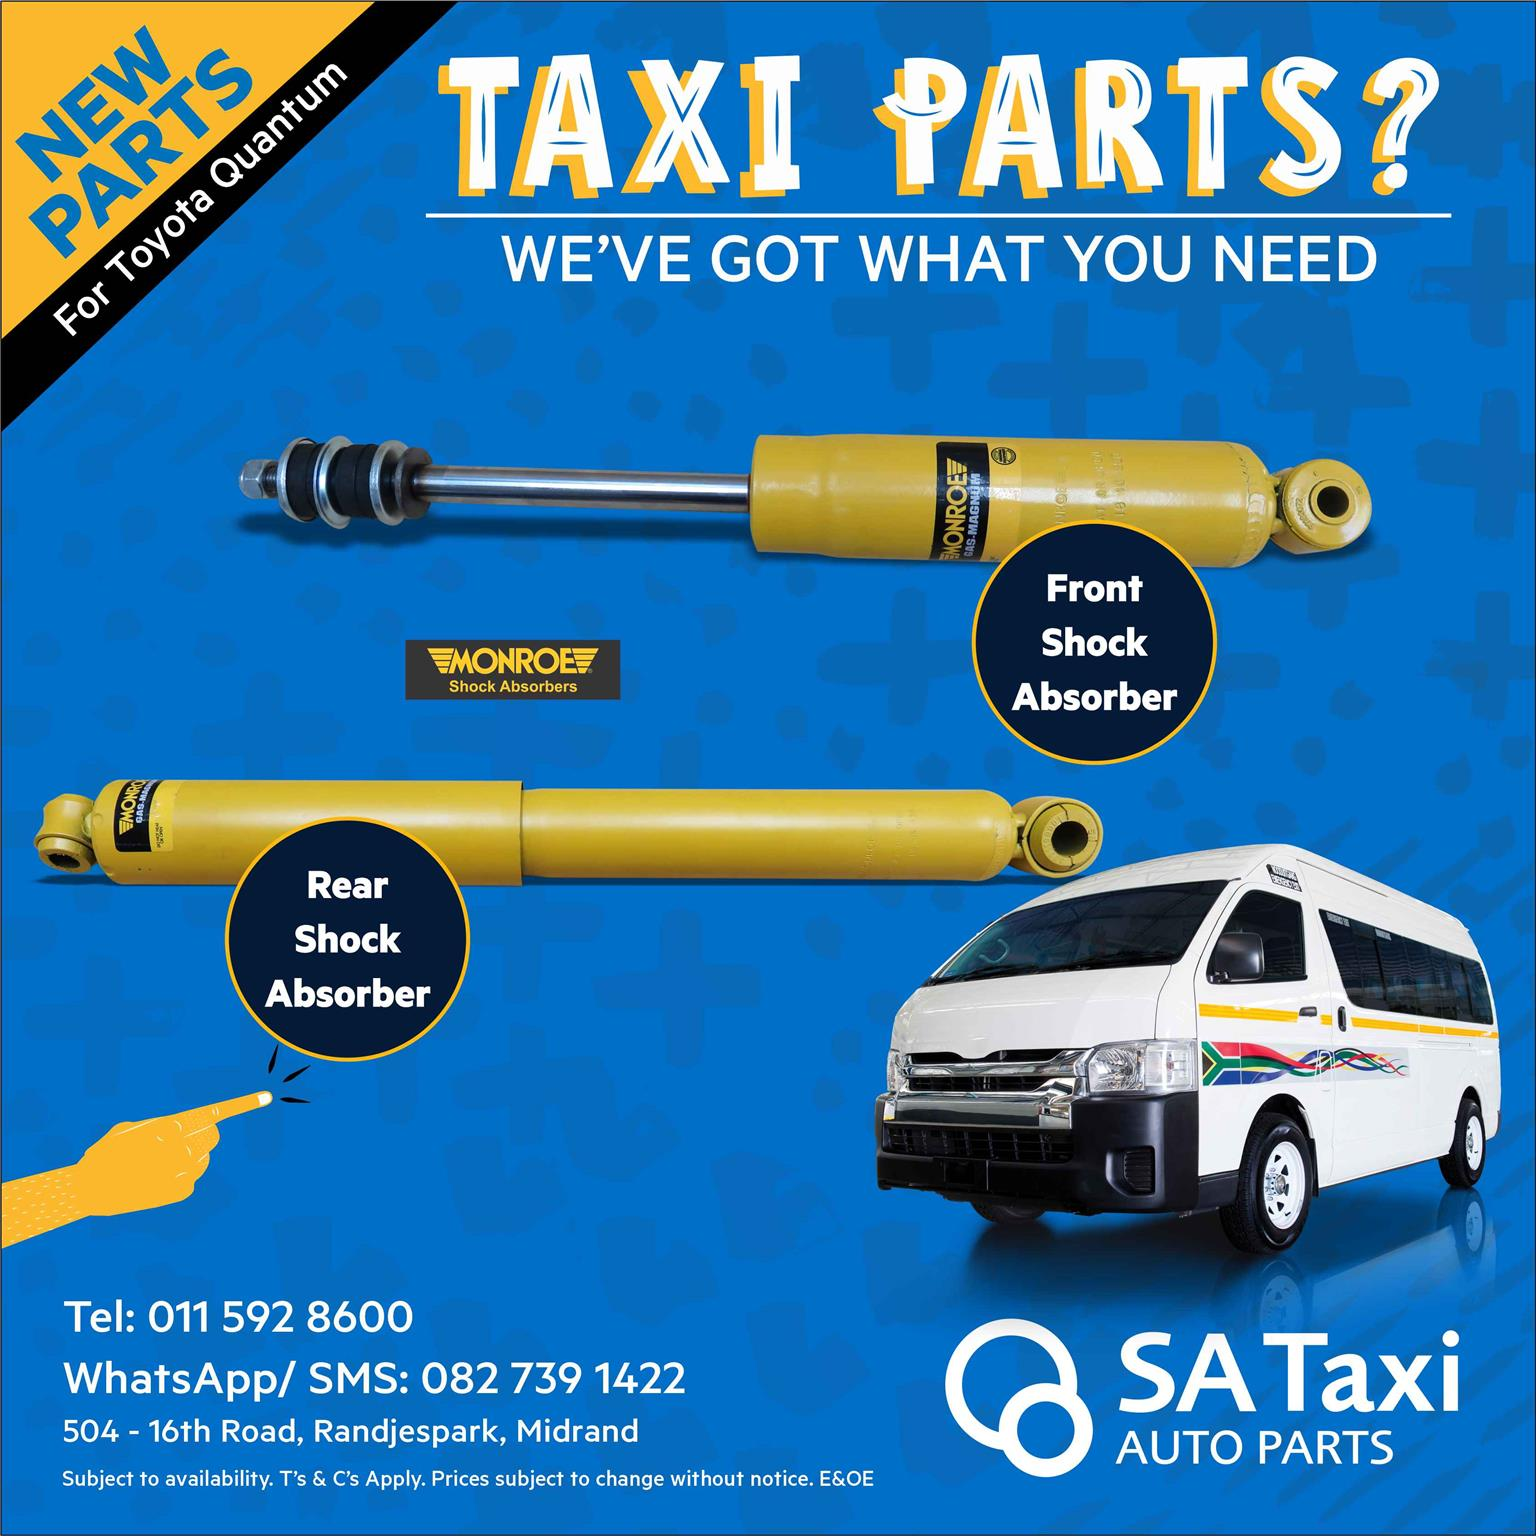 Front and Rear Shock Absorbers suitable for Toyota Quantum - SA Taxi Auto Parts quality spares